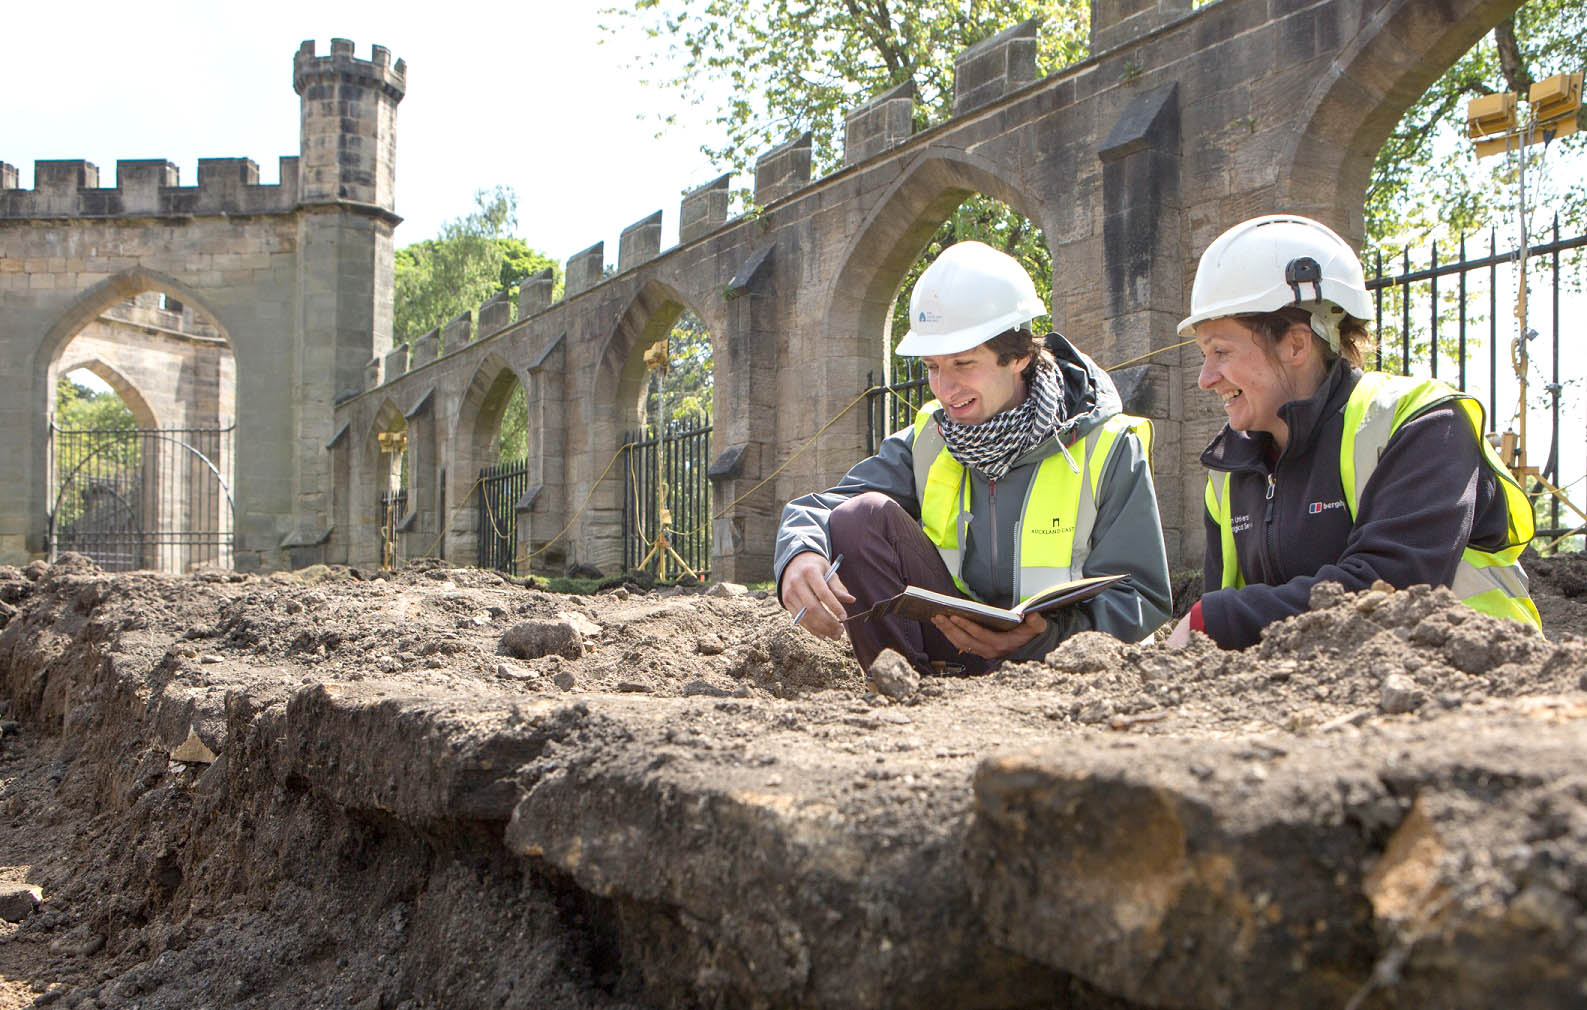 Excavation Work at 900 Year old Auckland Castle